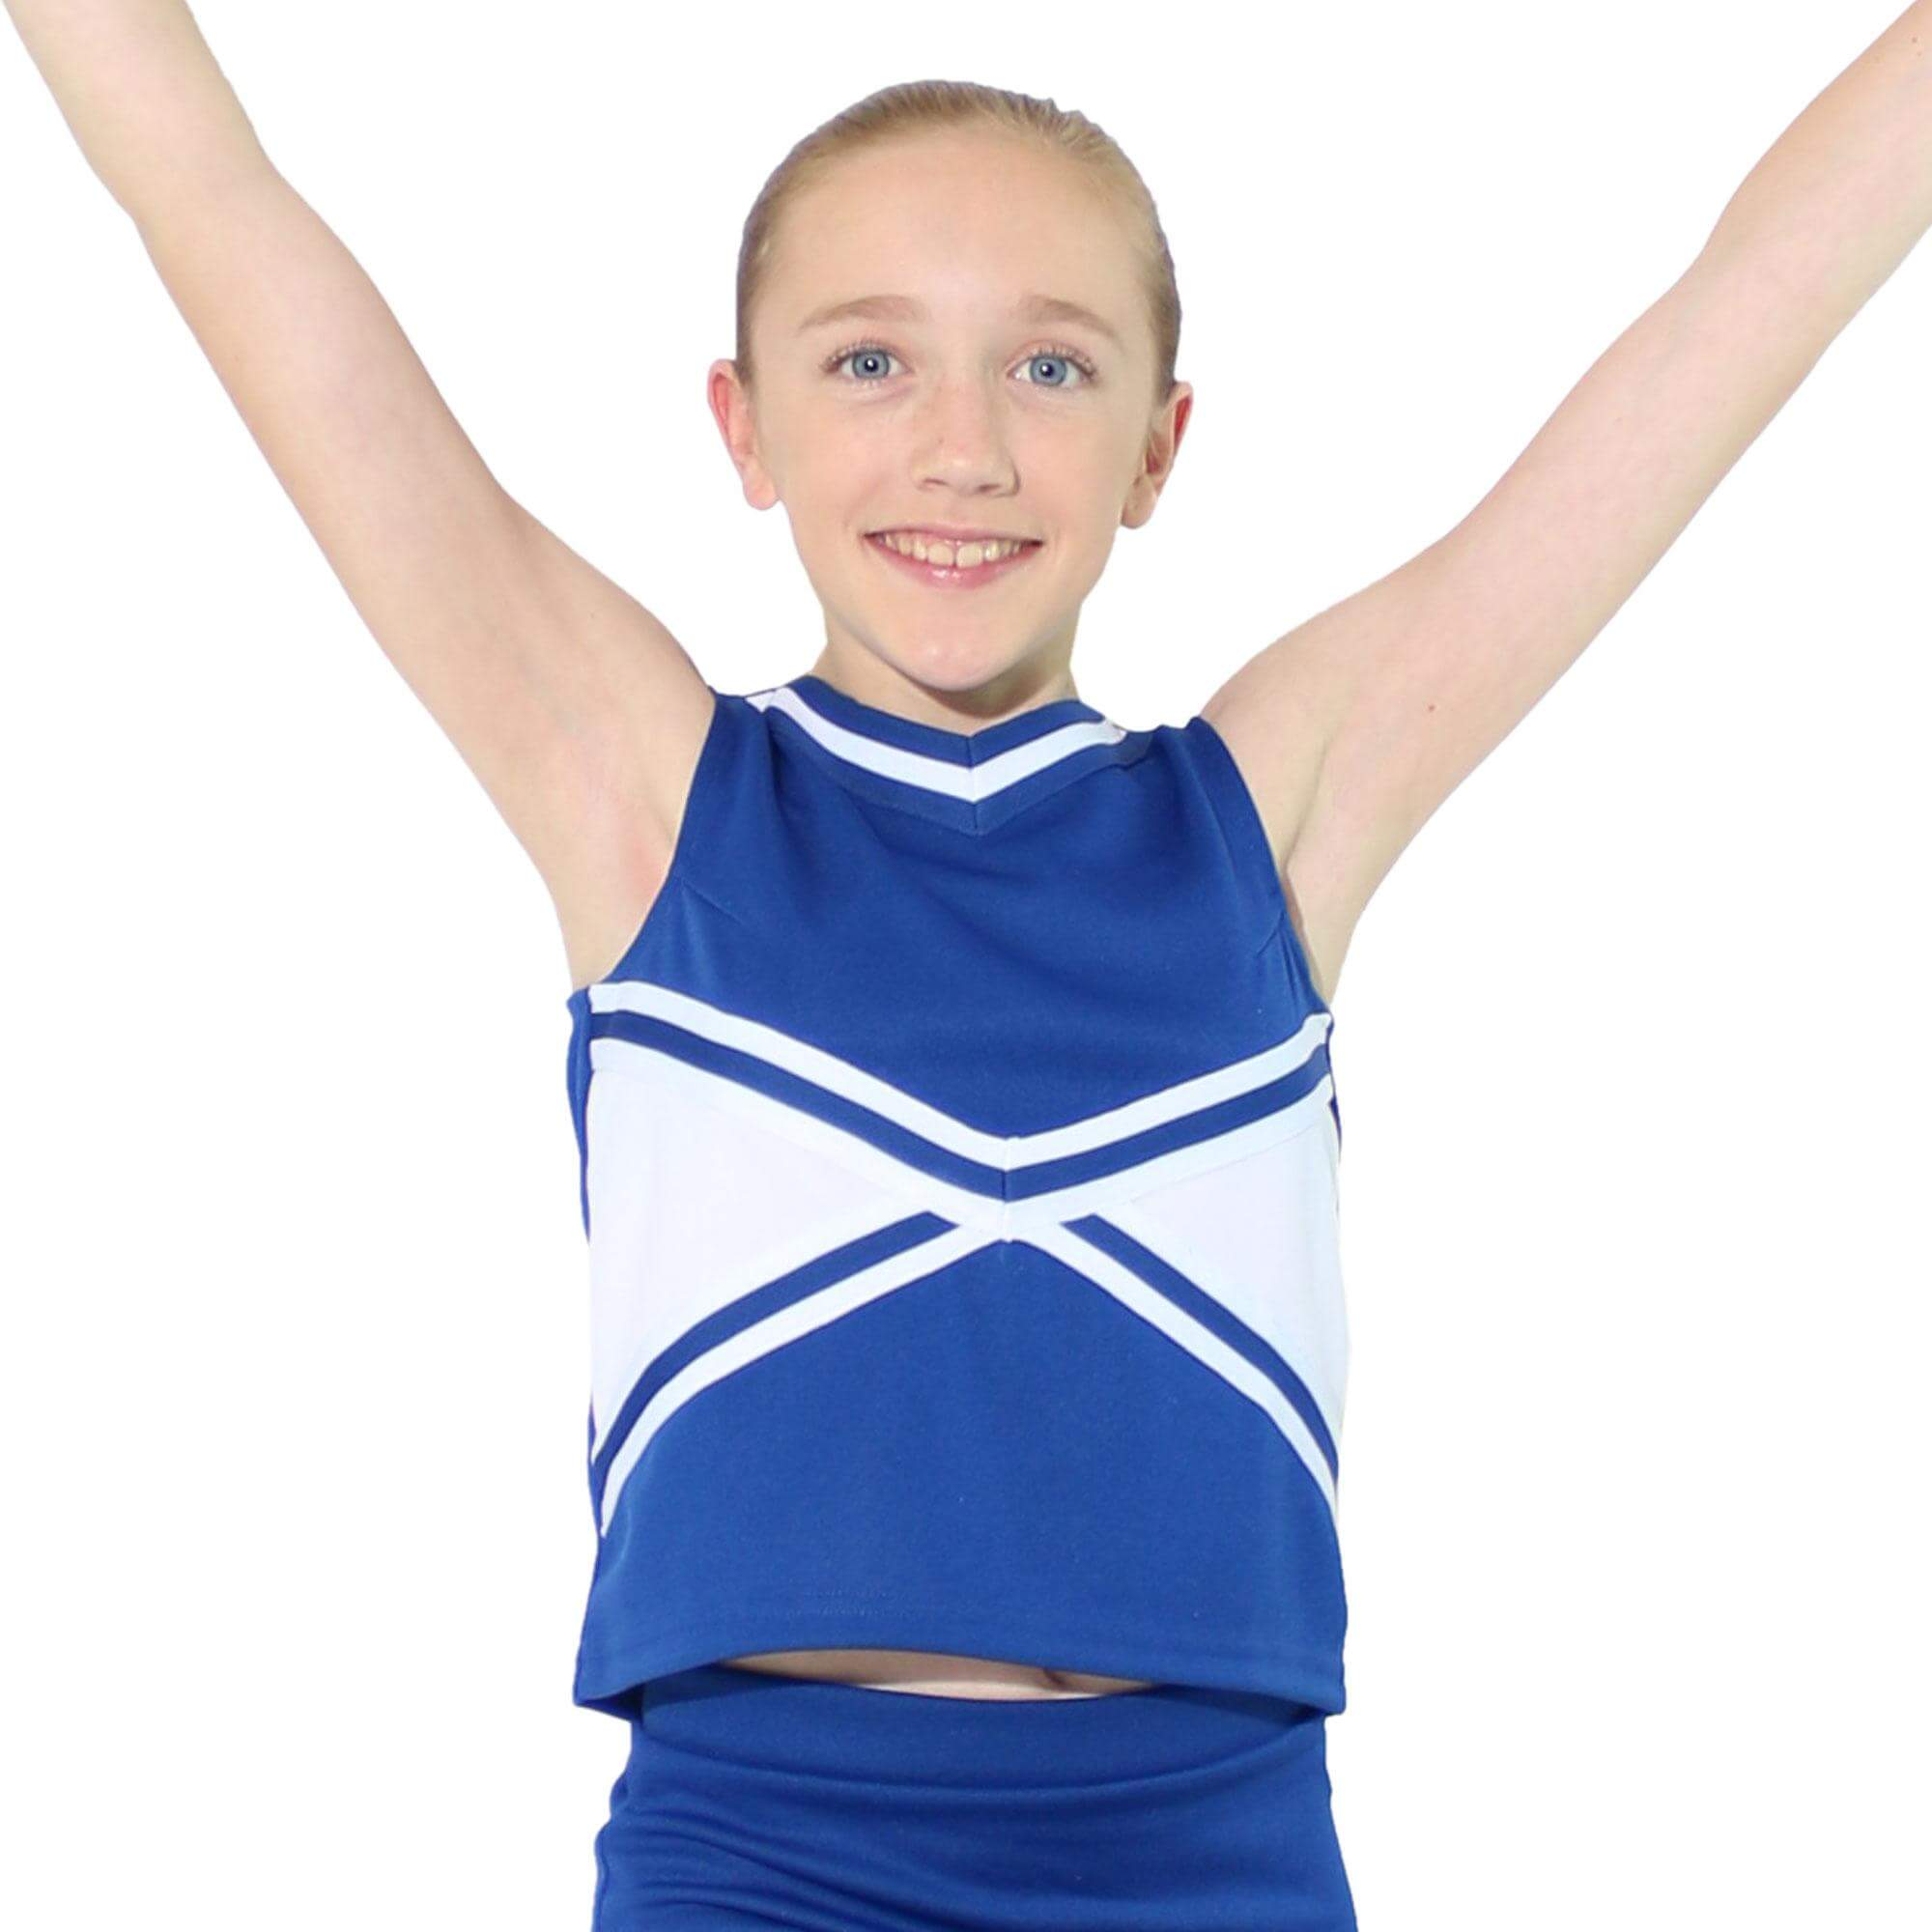 Danzcue Child 2-Color Kick Sweetheart Cheerleaders Uniform Shell Top